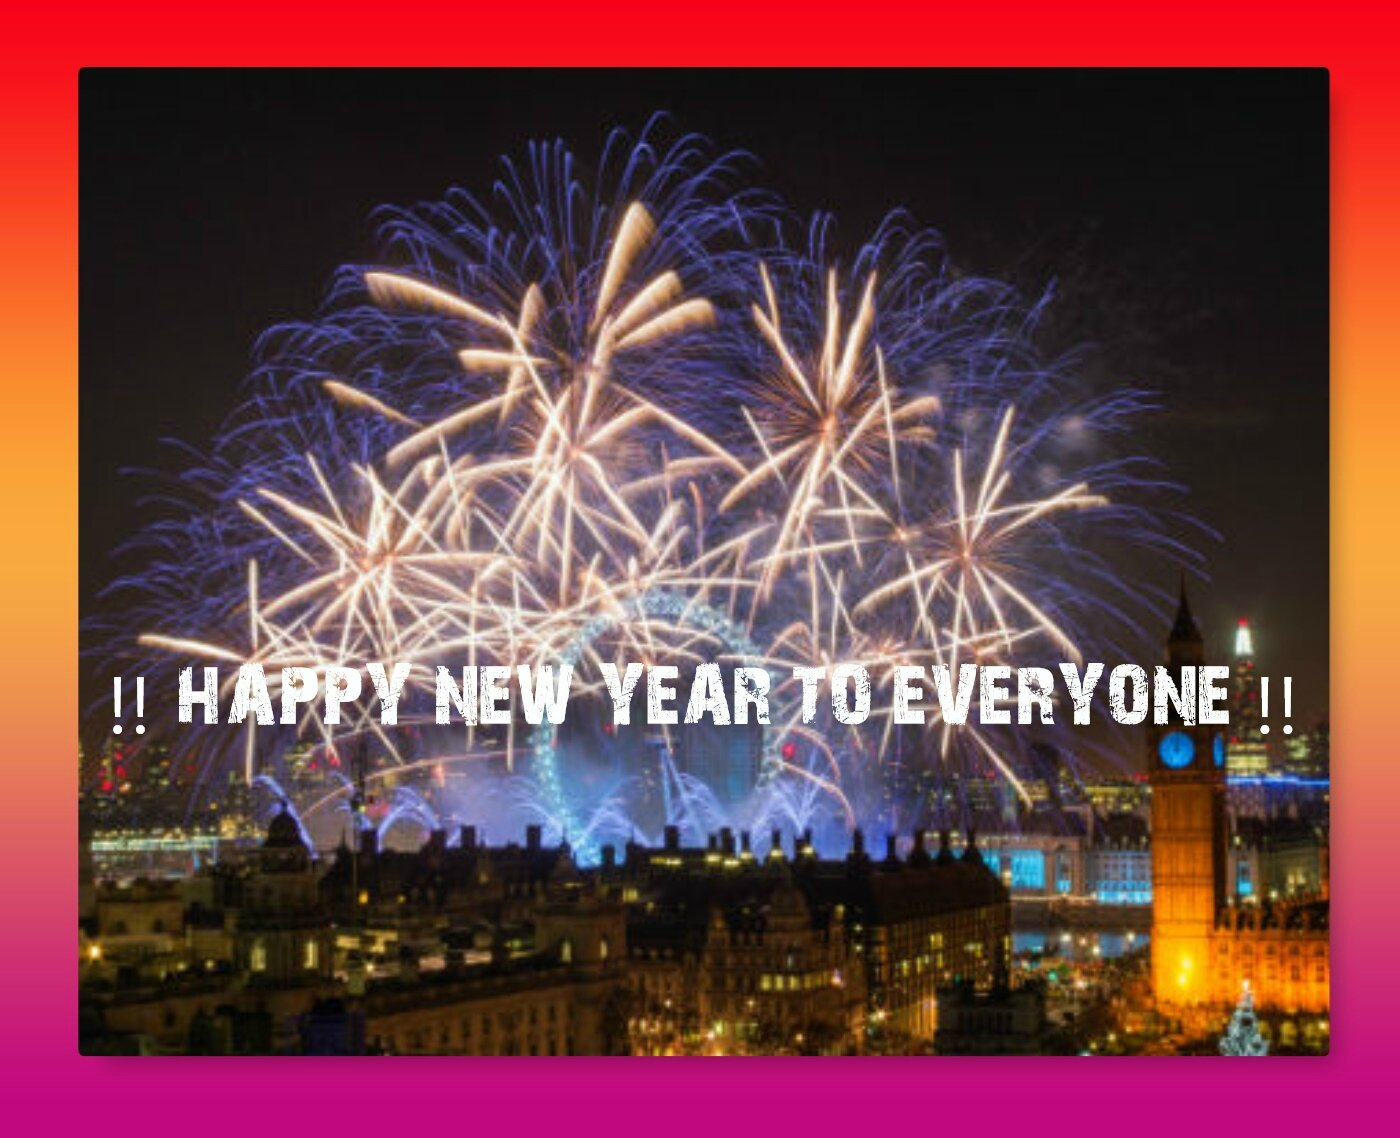 !! HAPPY NEW YEAR !! from belicious-delicious-handmade creations